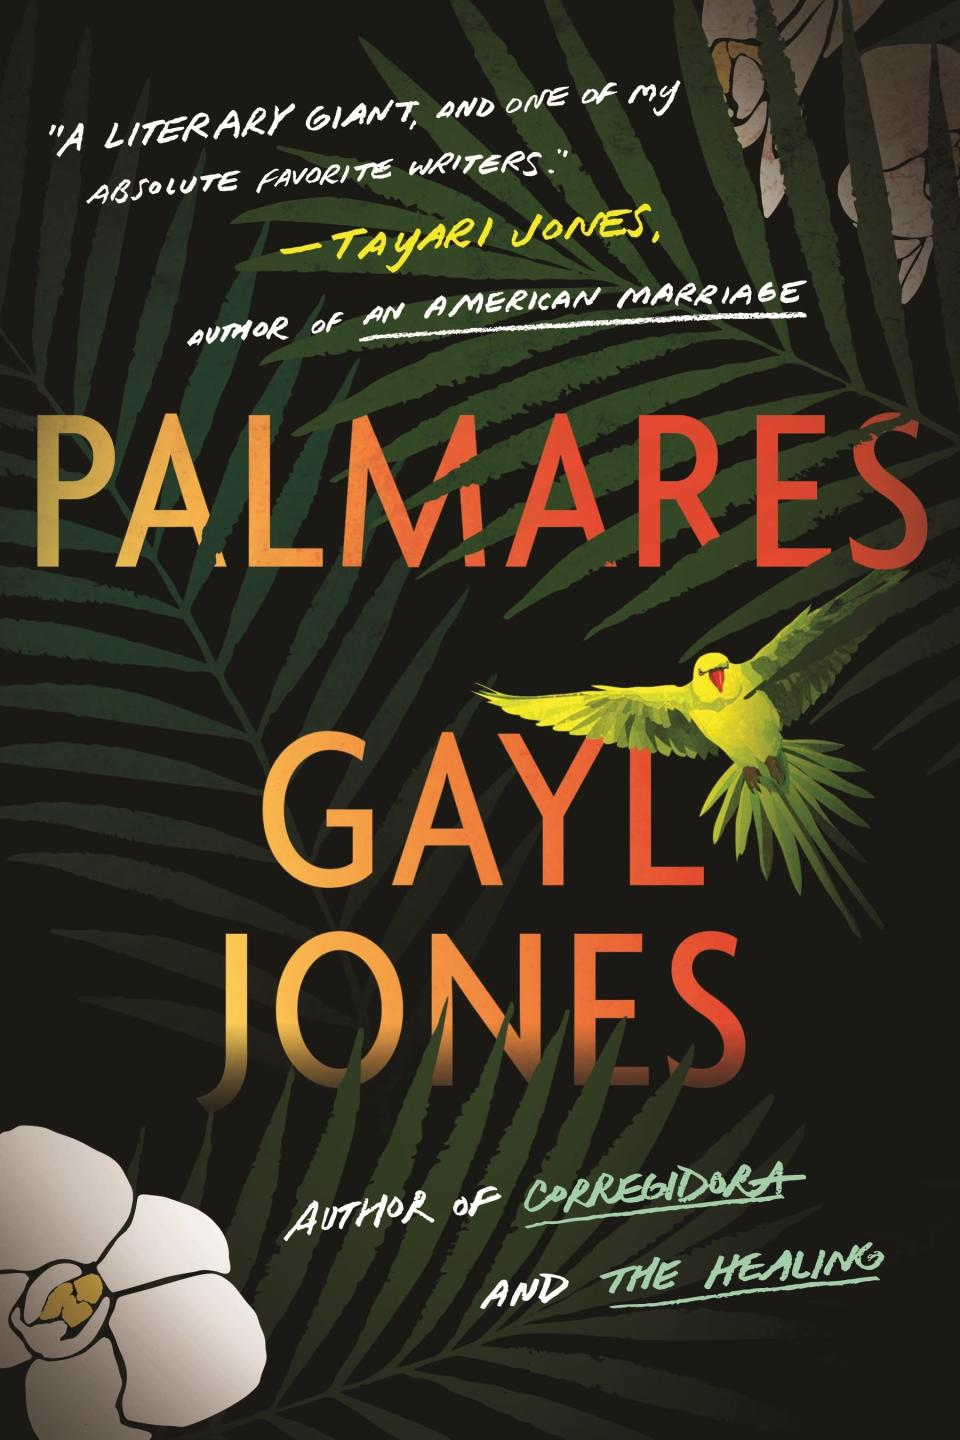 """This cover image released by Beacon Press shows """"Palmares"""" by Gayl Jones, releasing Sept. 14. (Beacon Press via AP)"""